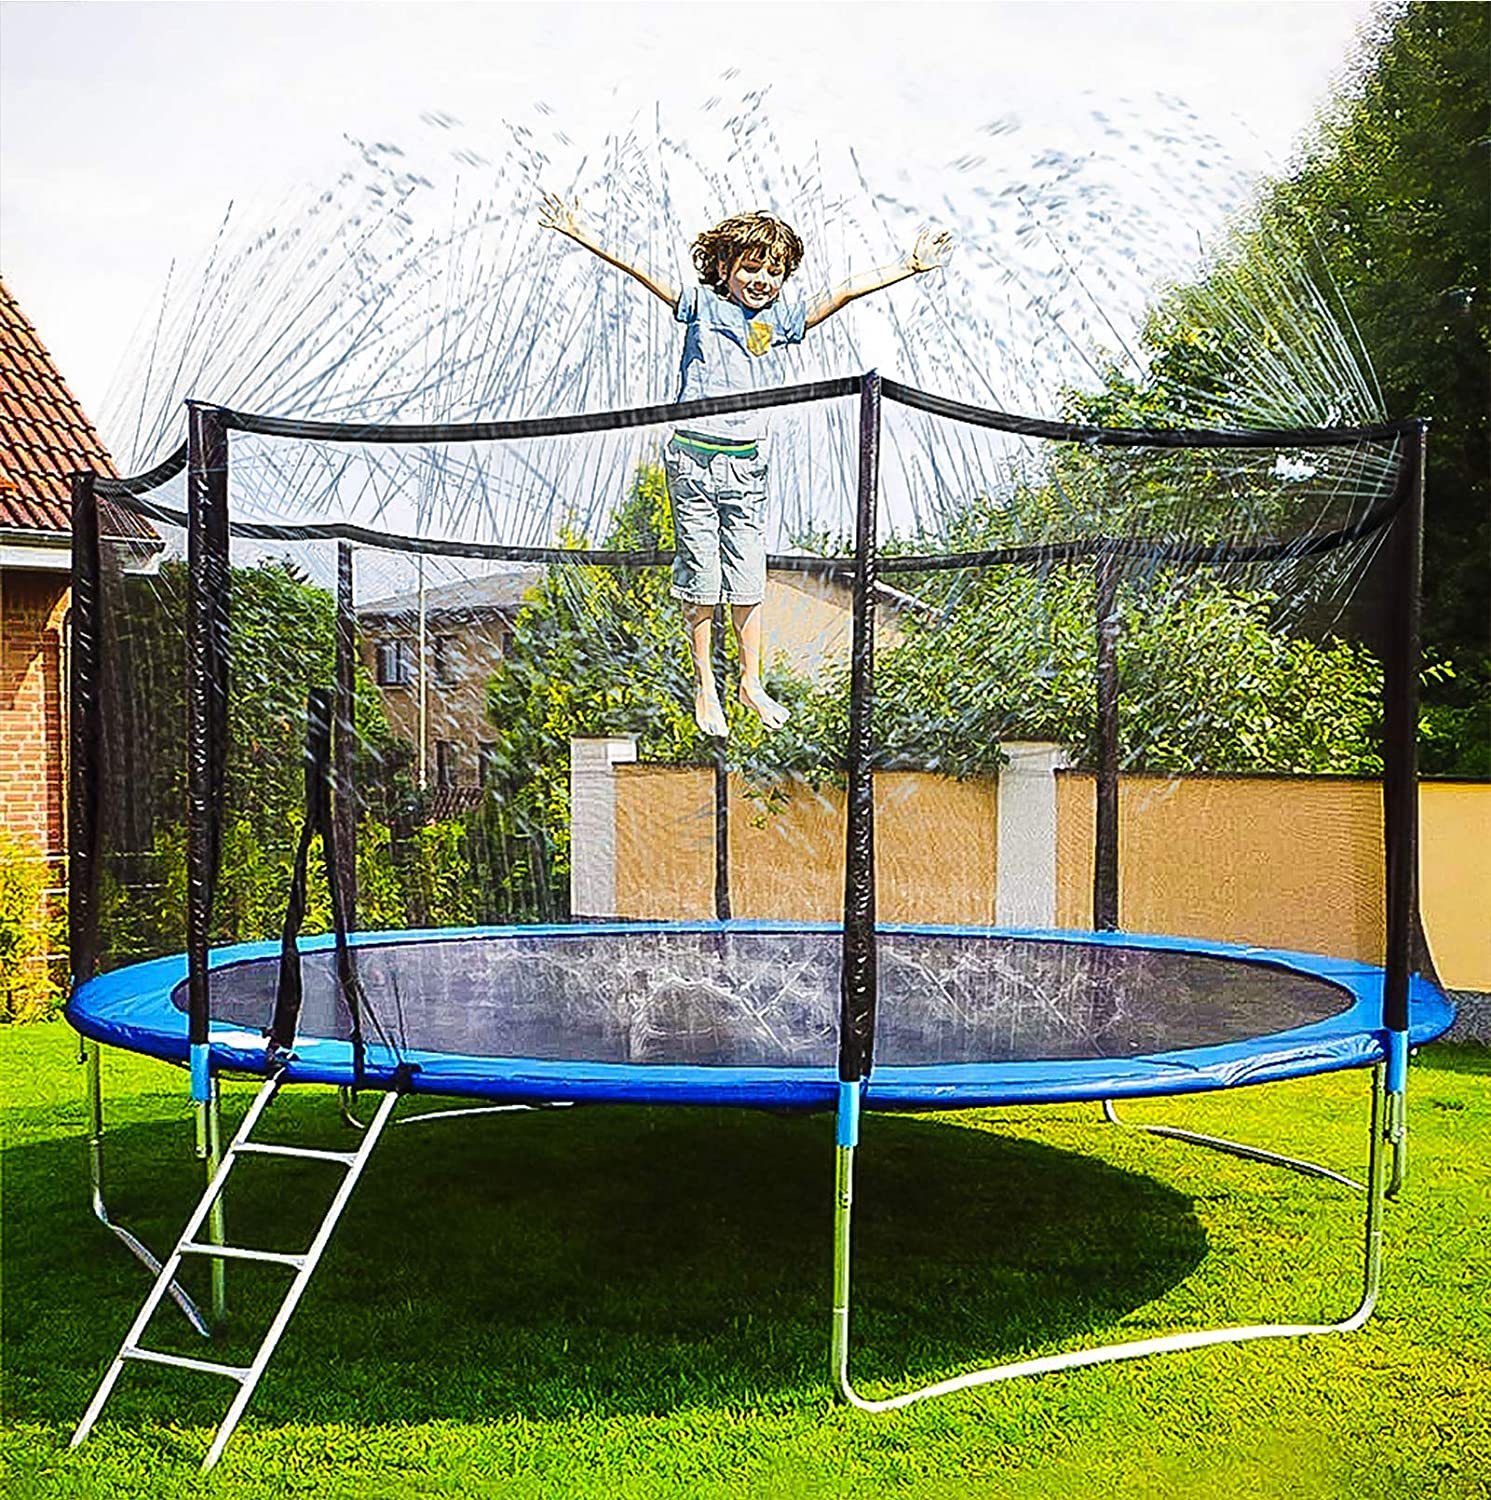 Neoformers Trampoline Sprinkler Water Game Park New Free Shipping S Portland Mall Outdoor